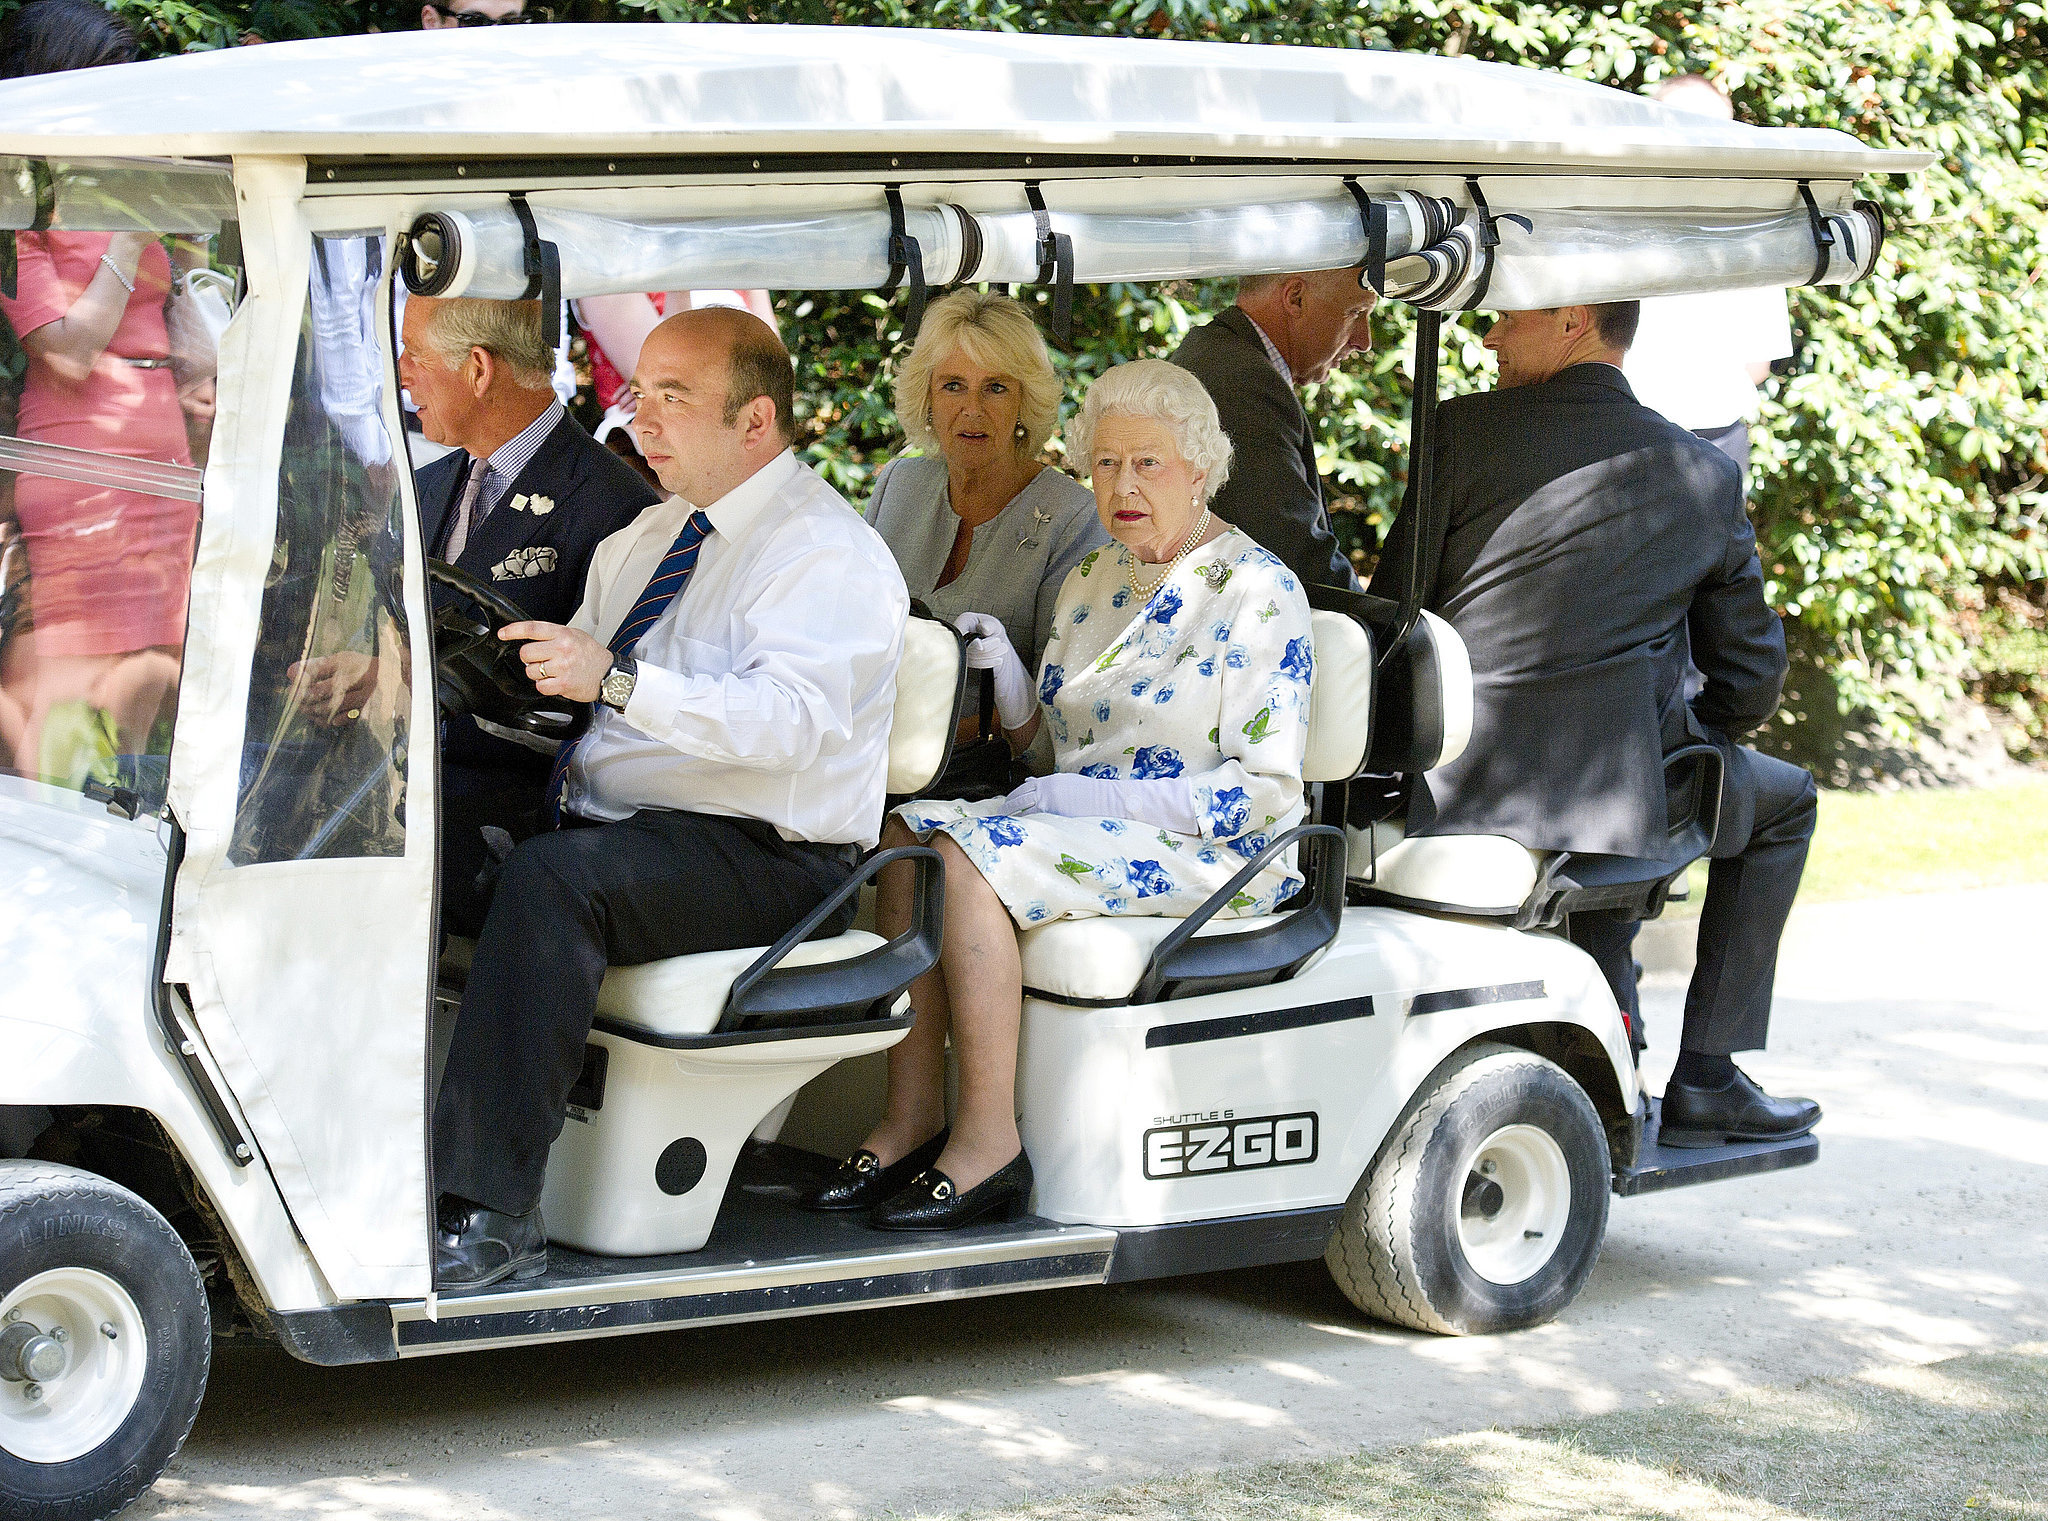 Least: When She Rode on a Golf Cart